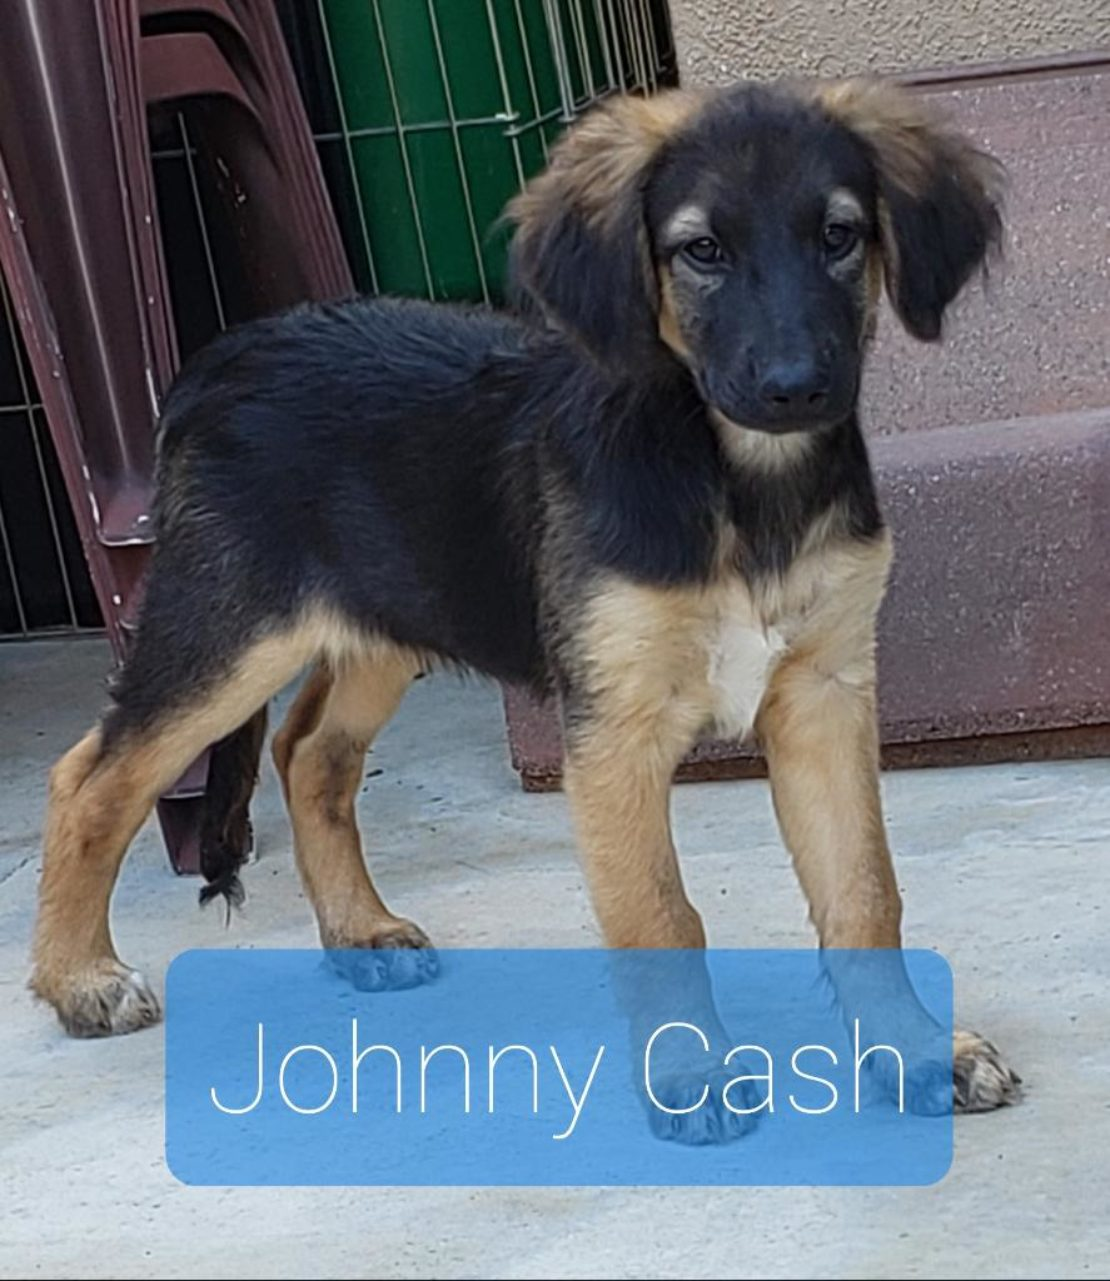 brown terrier/dachshund with tan legs stands on floor. Johnny Cash is written underneath.